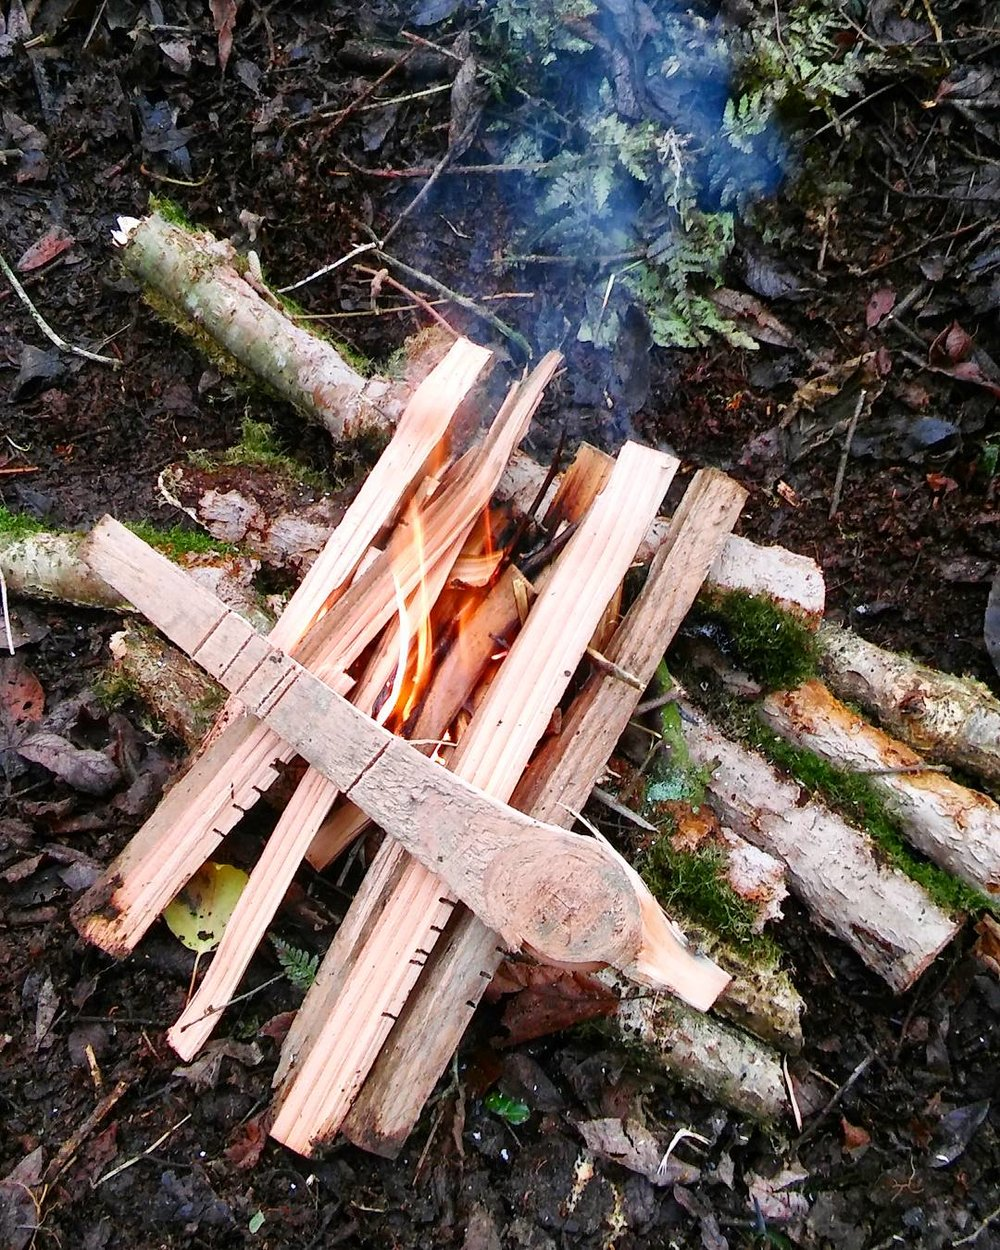 Step 2: Create a bed of mini logs for the fire to sit on, if the ground is really damp. Lay your tinder across the fire with one side slightly raised to assist with airflow.